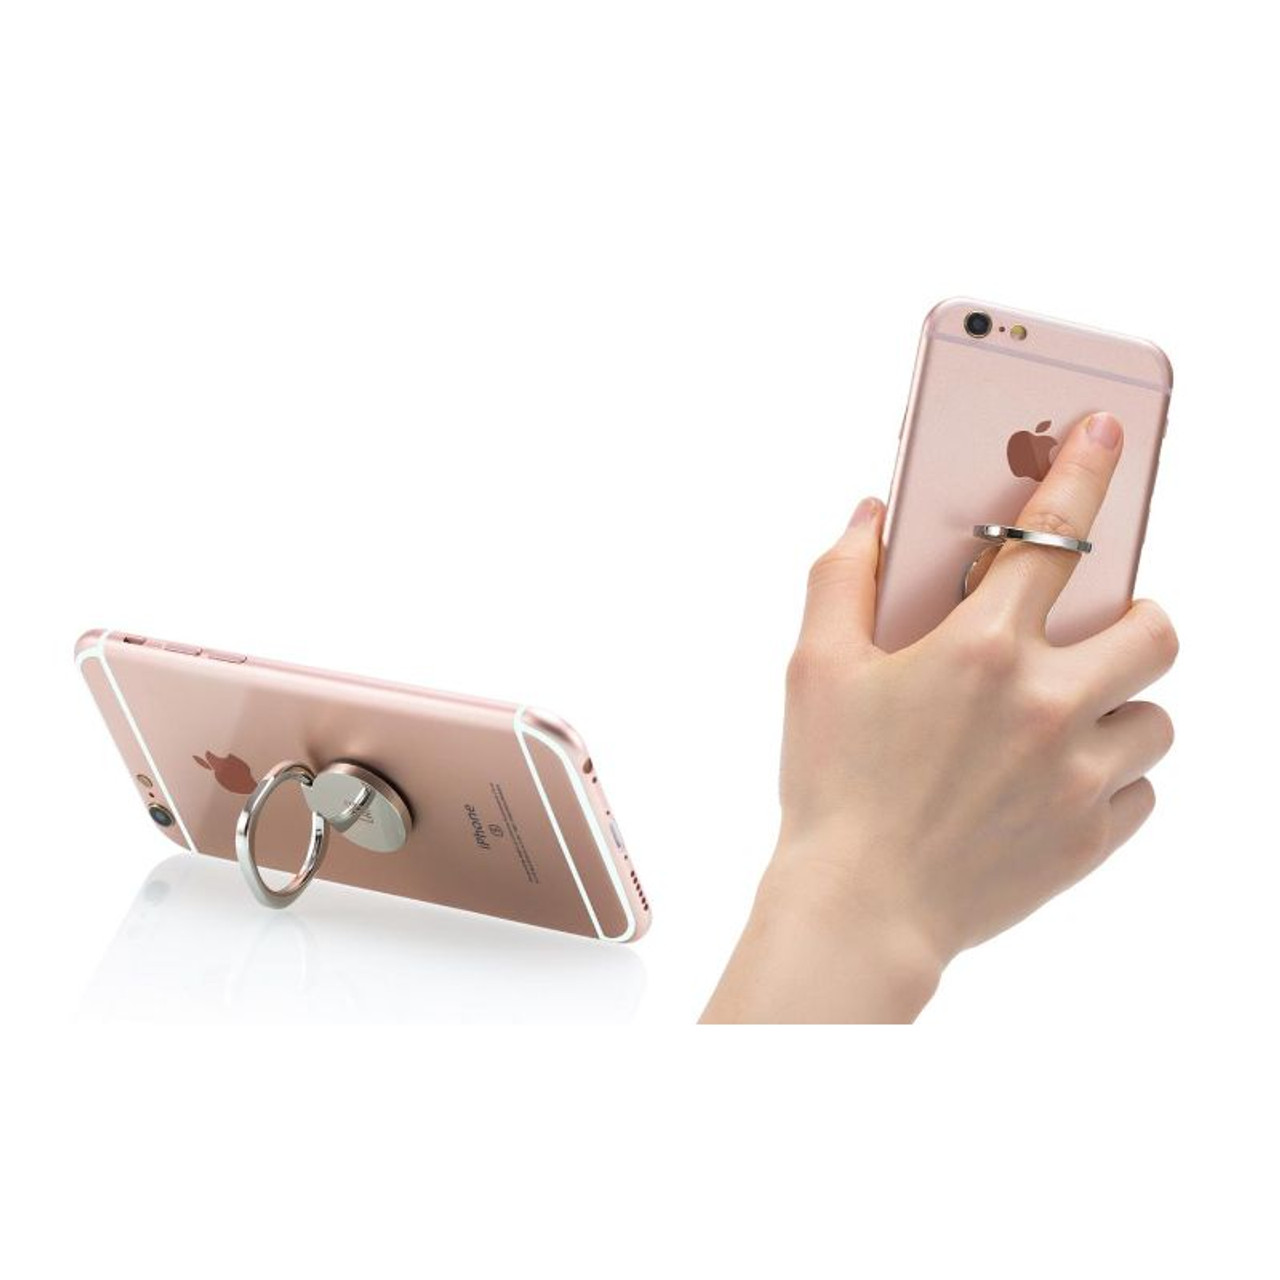 Stylish Ring Phone Stand Pro with 180-Degree Rotation